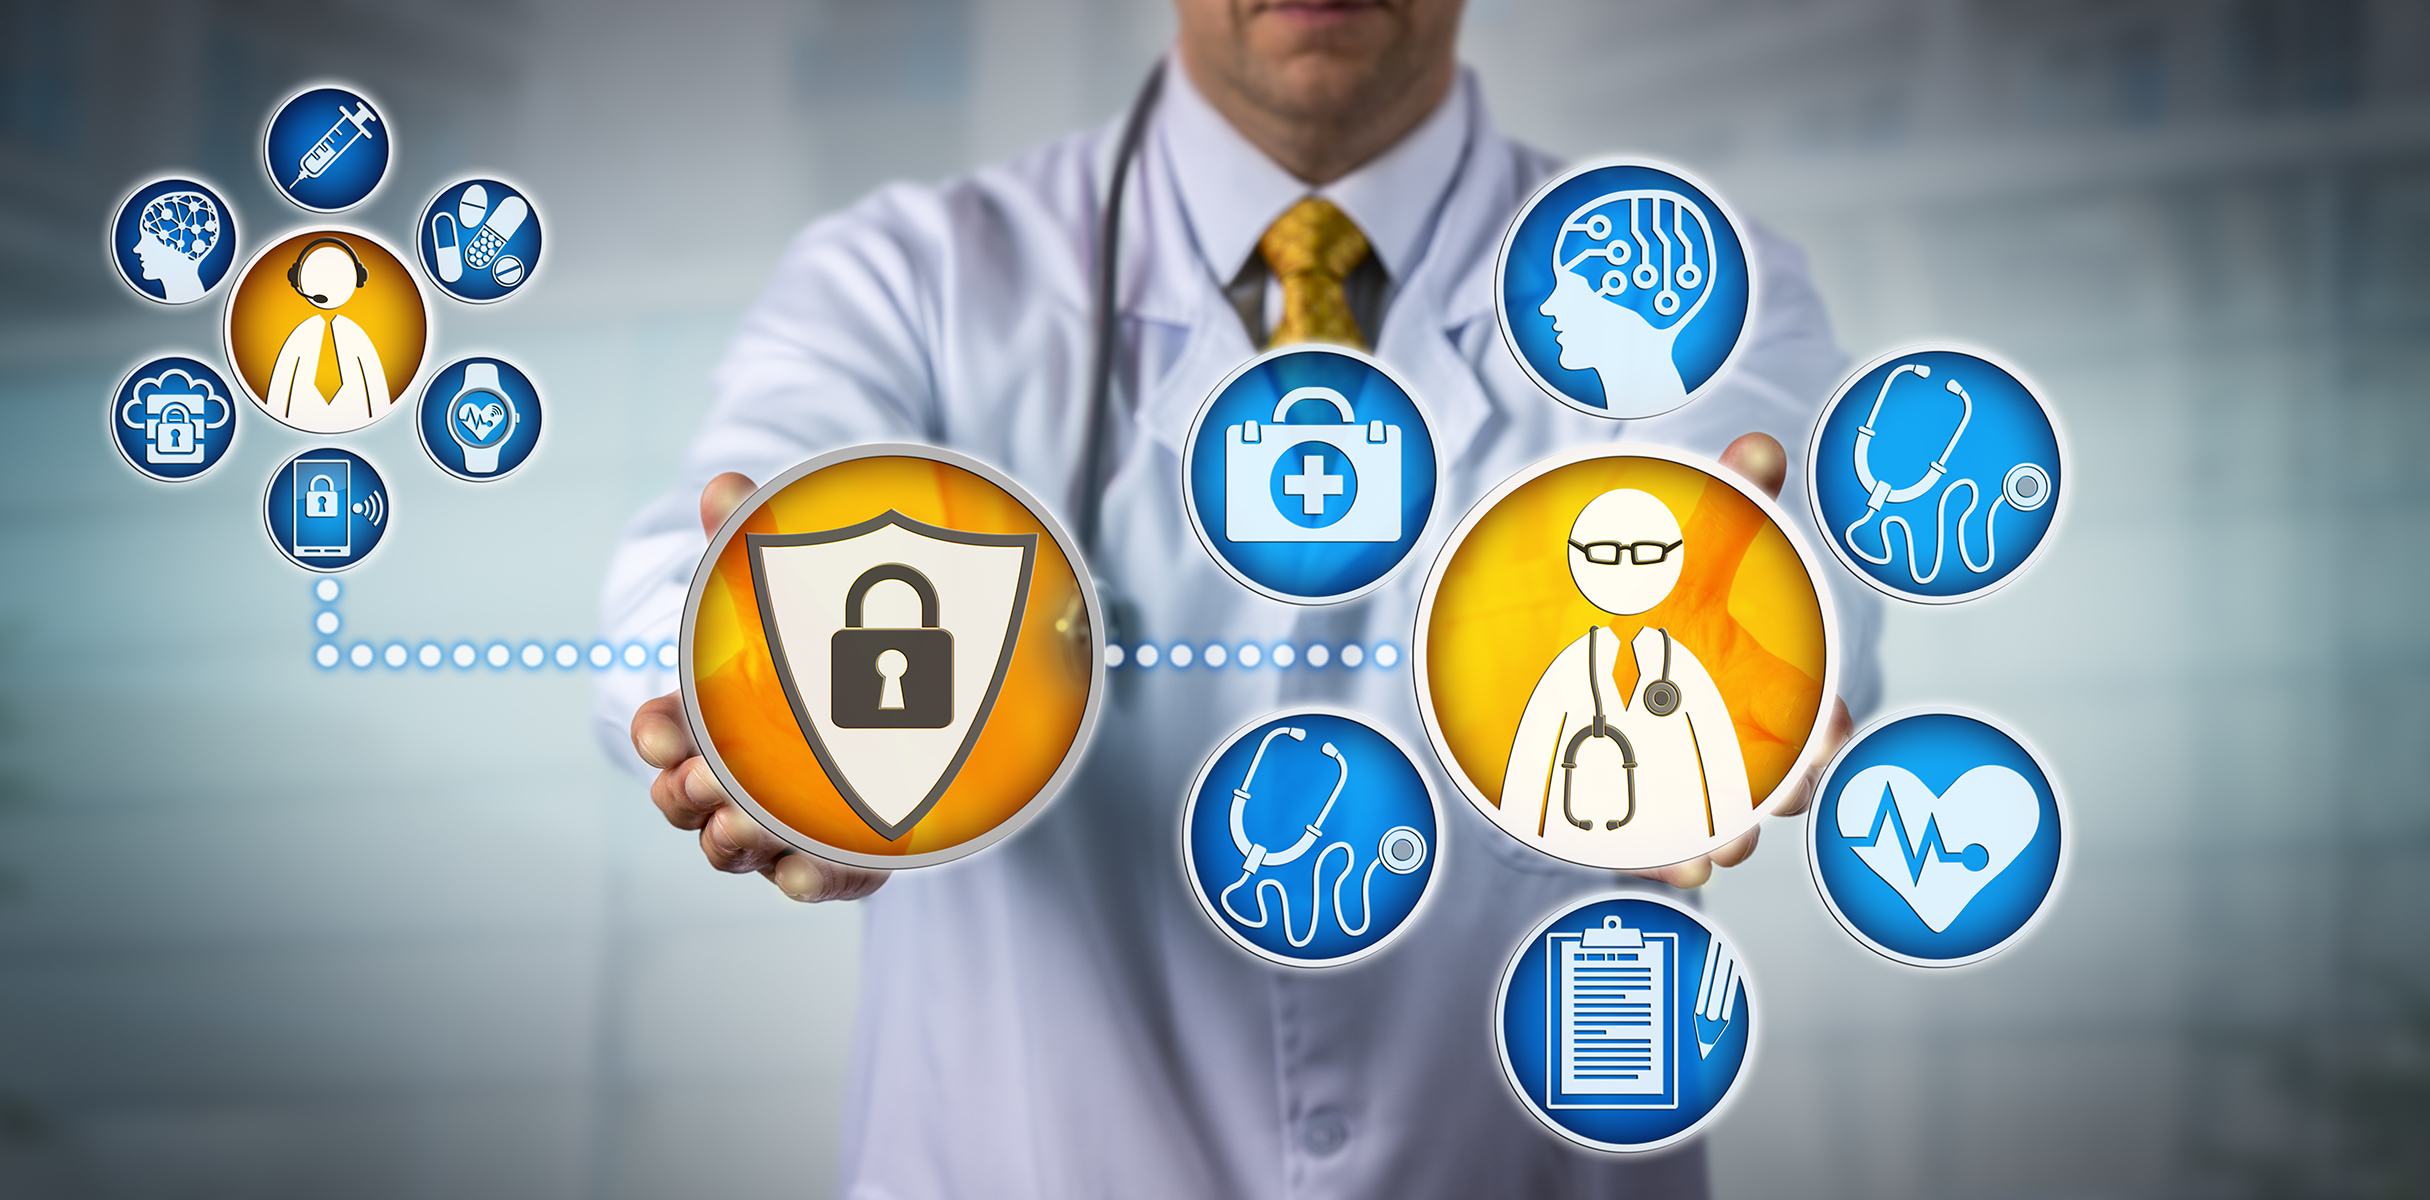 So what does HIPAA protect? Any data in a patient's medical record that can be used to personally identify them - in HIPAA terms, protected health information (PHI).